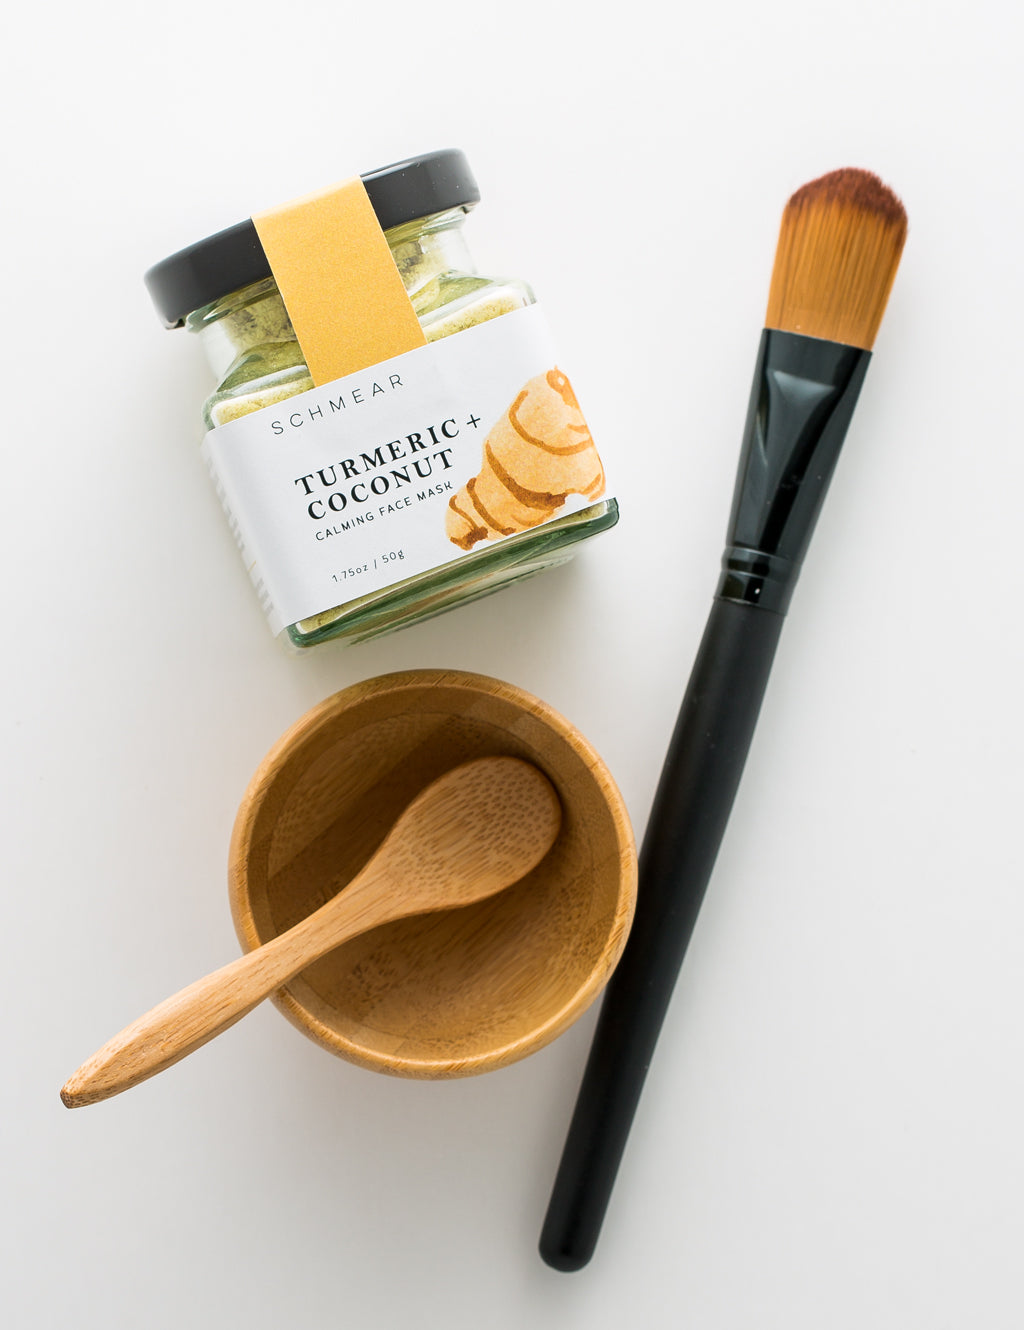 Soothing Face Mask and Skin Tools